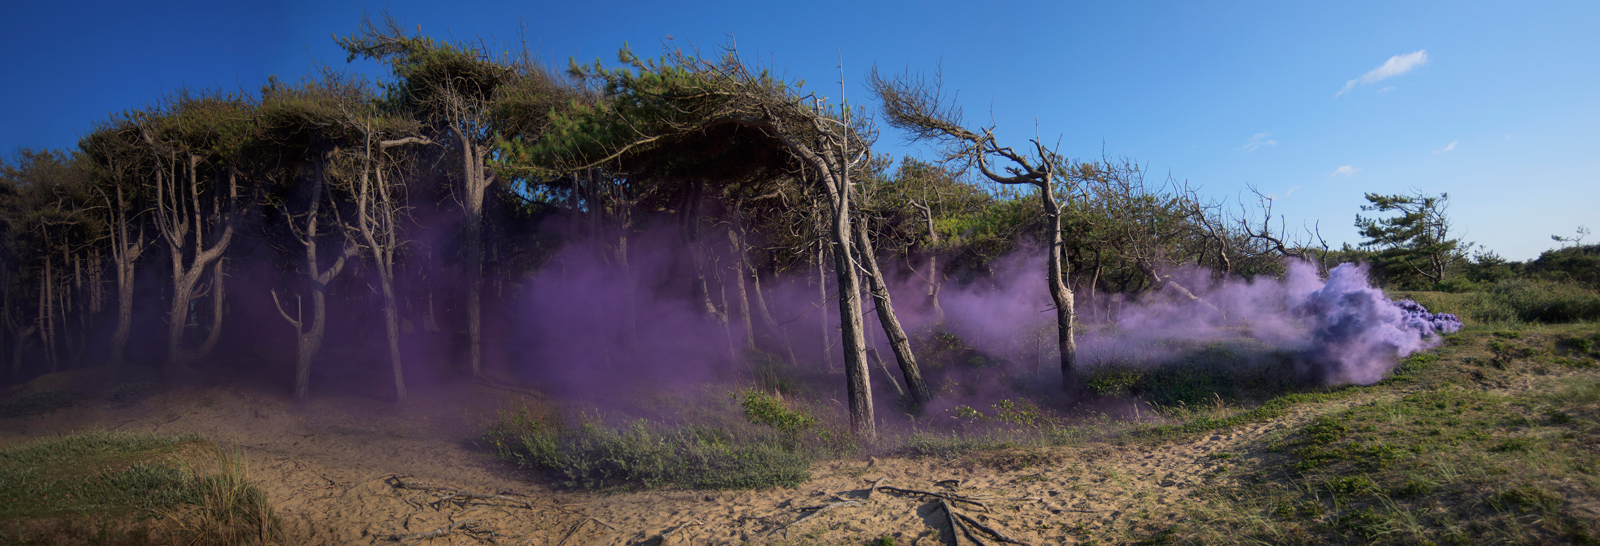 Flood | David Ogle, 2015 | purple smoke pyrotechnics | landscape installation (high resolution digital video installation: 3min36sec) | part of Loomings: produced by: Mark Devereux Projects, videography by: Andrew Brooks | image: courtesy of the artist